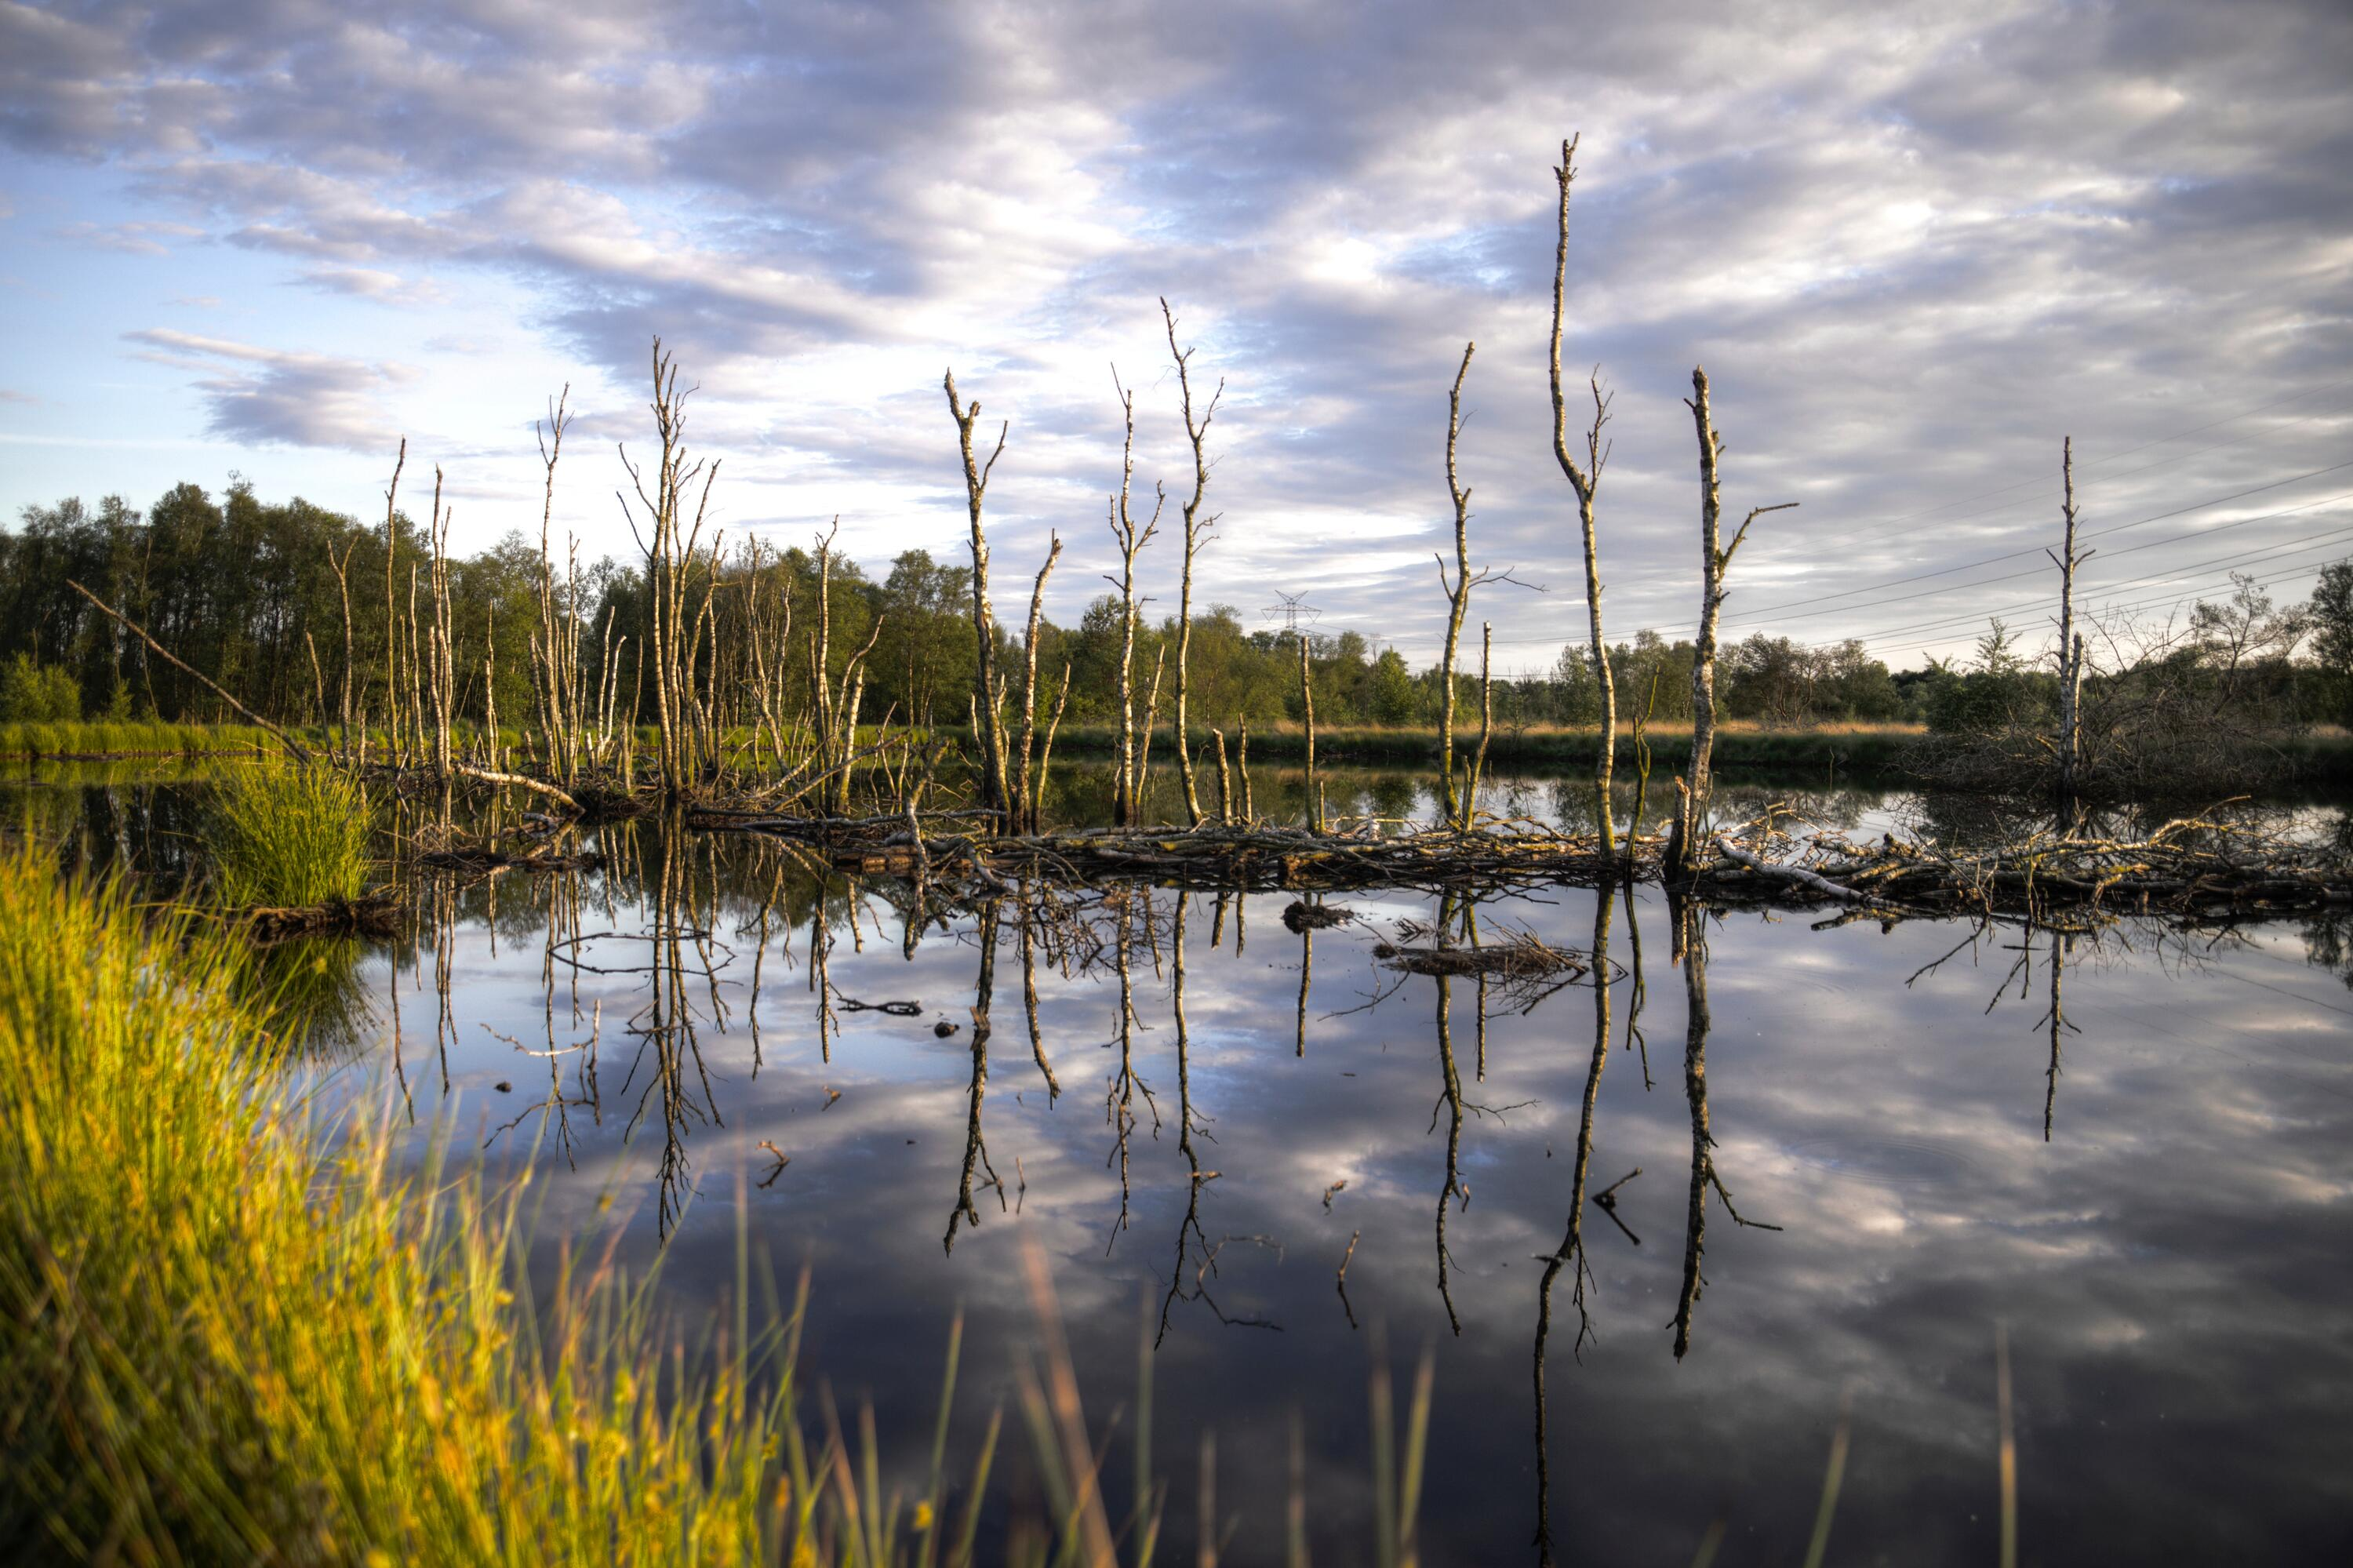 Wetland landscape, including trees growing from shallow water, and green plants along the edge of the wetland